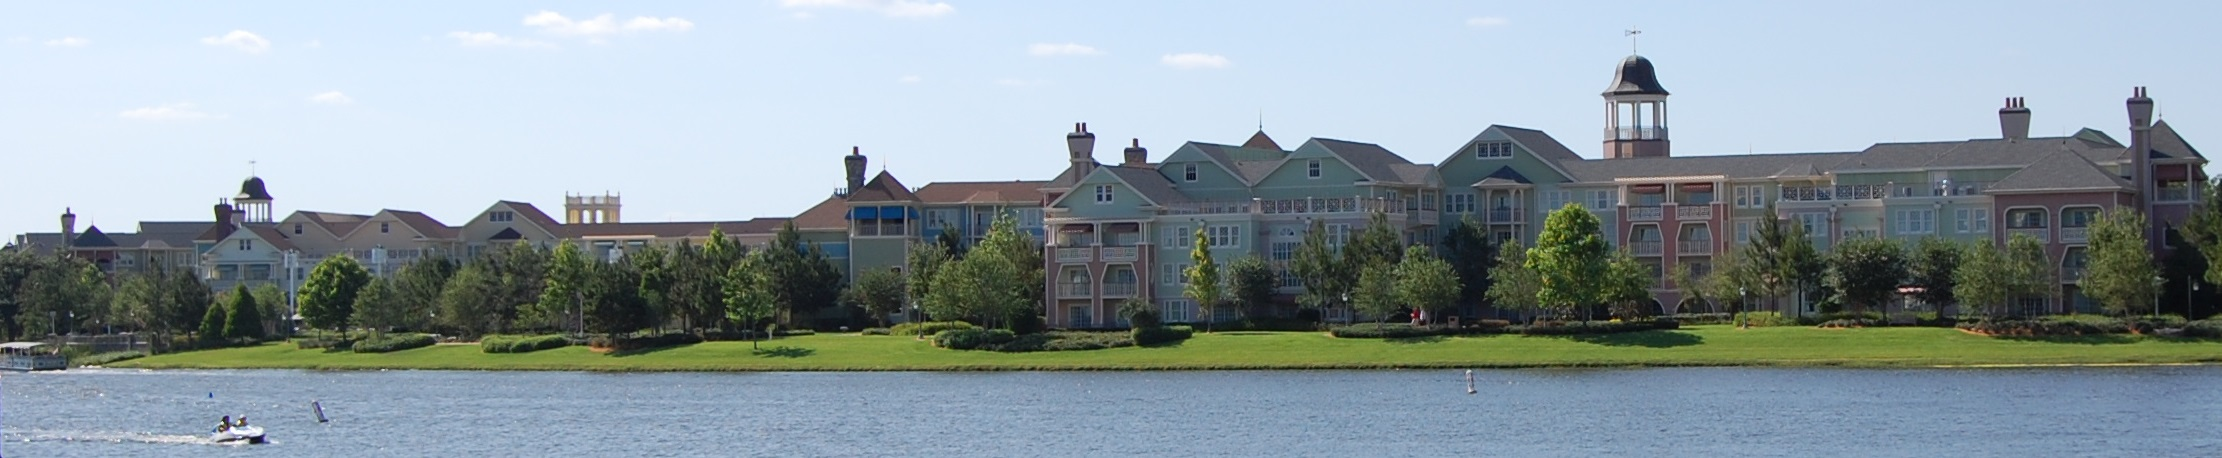 Disney's Saratoga Springs as seen from Downtown Disney